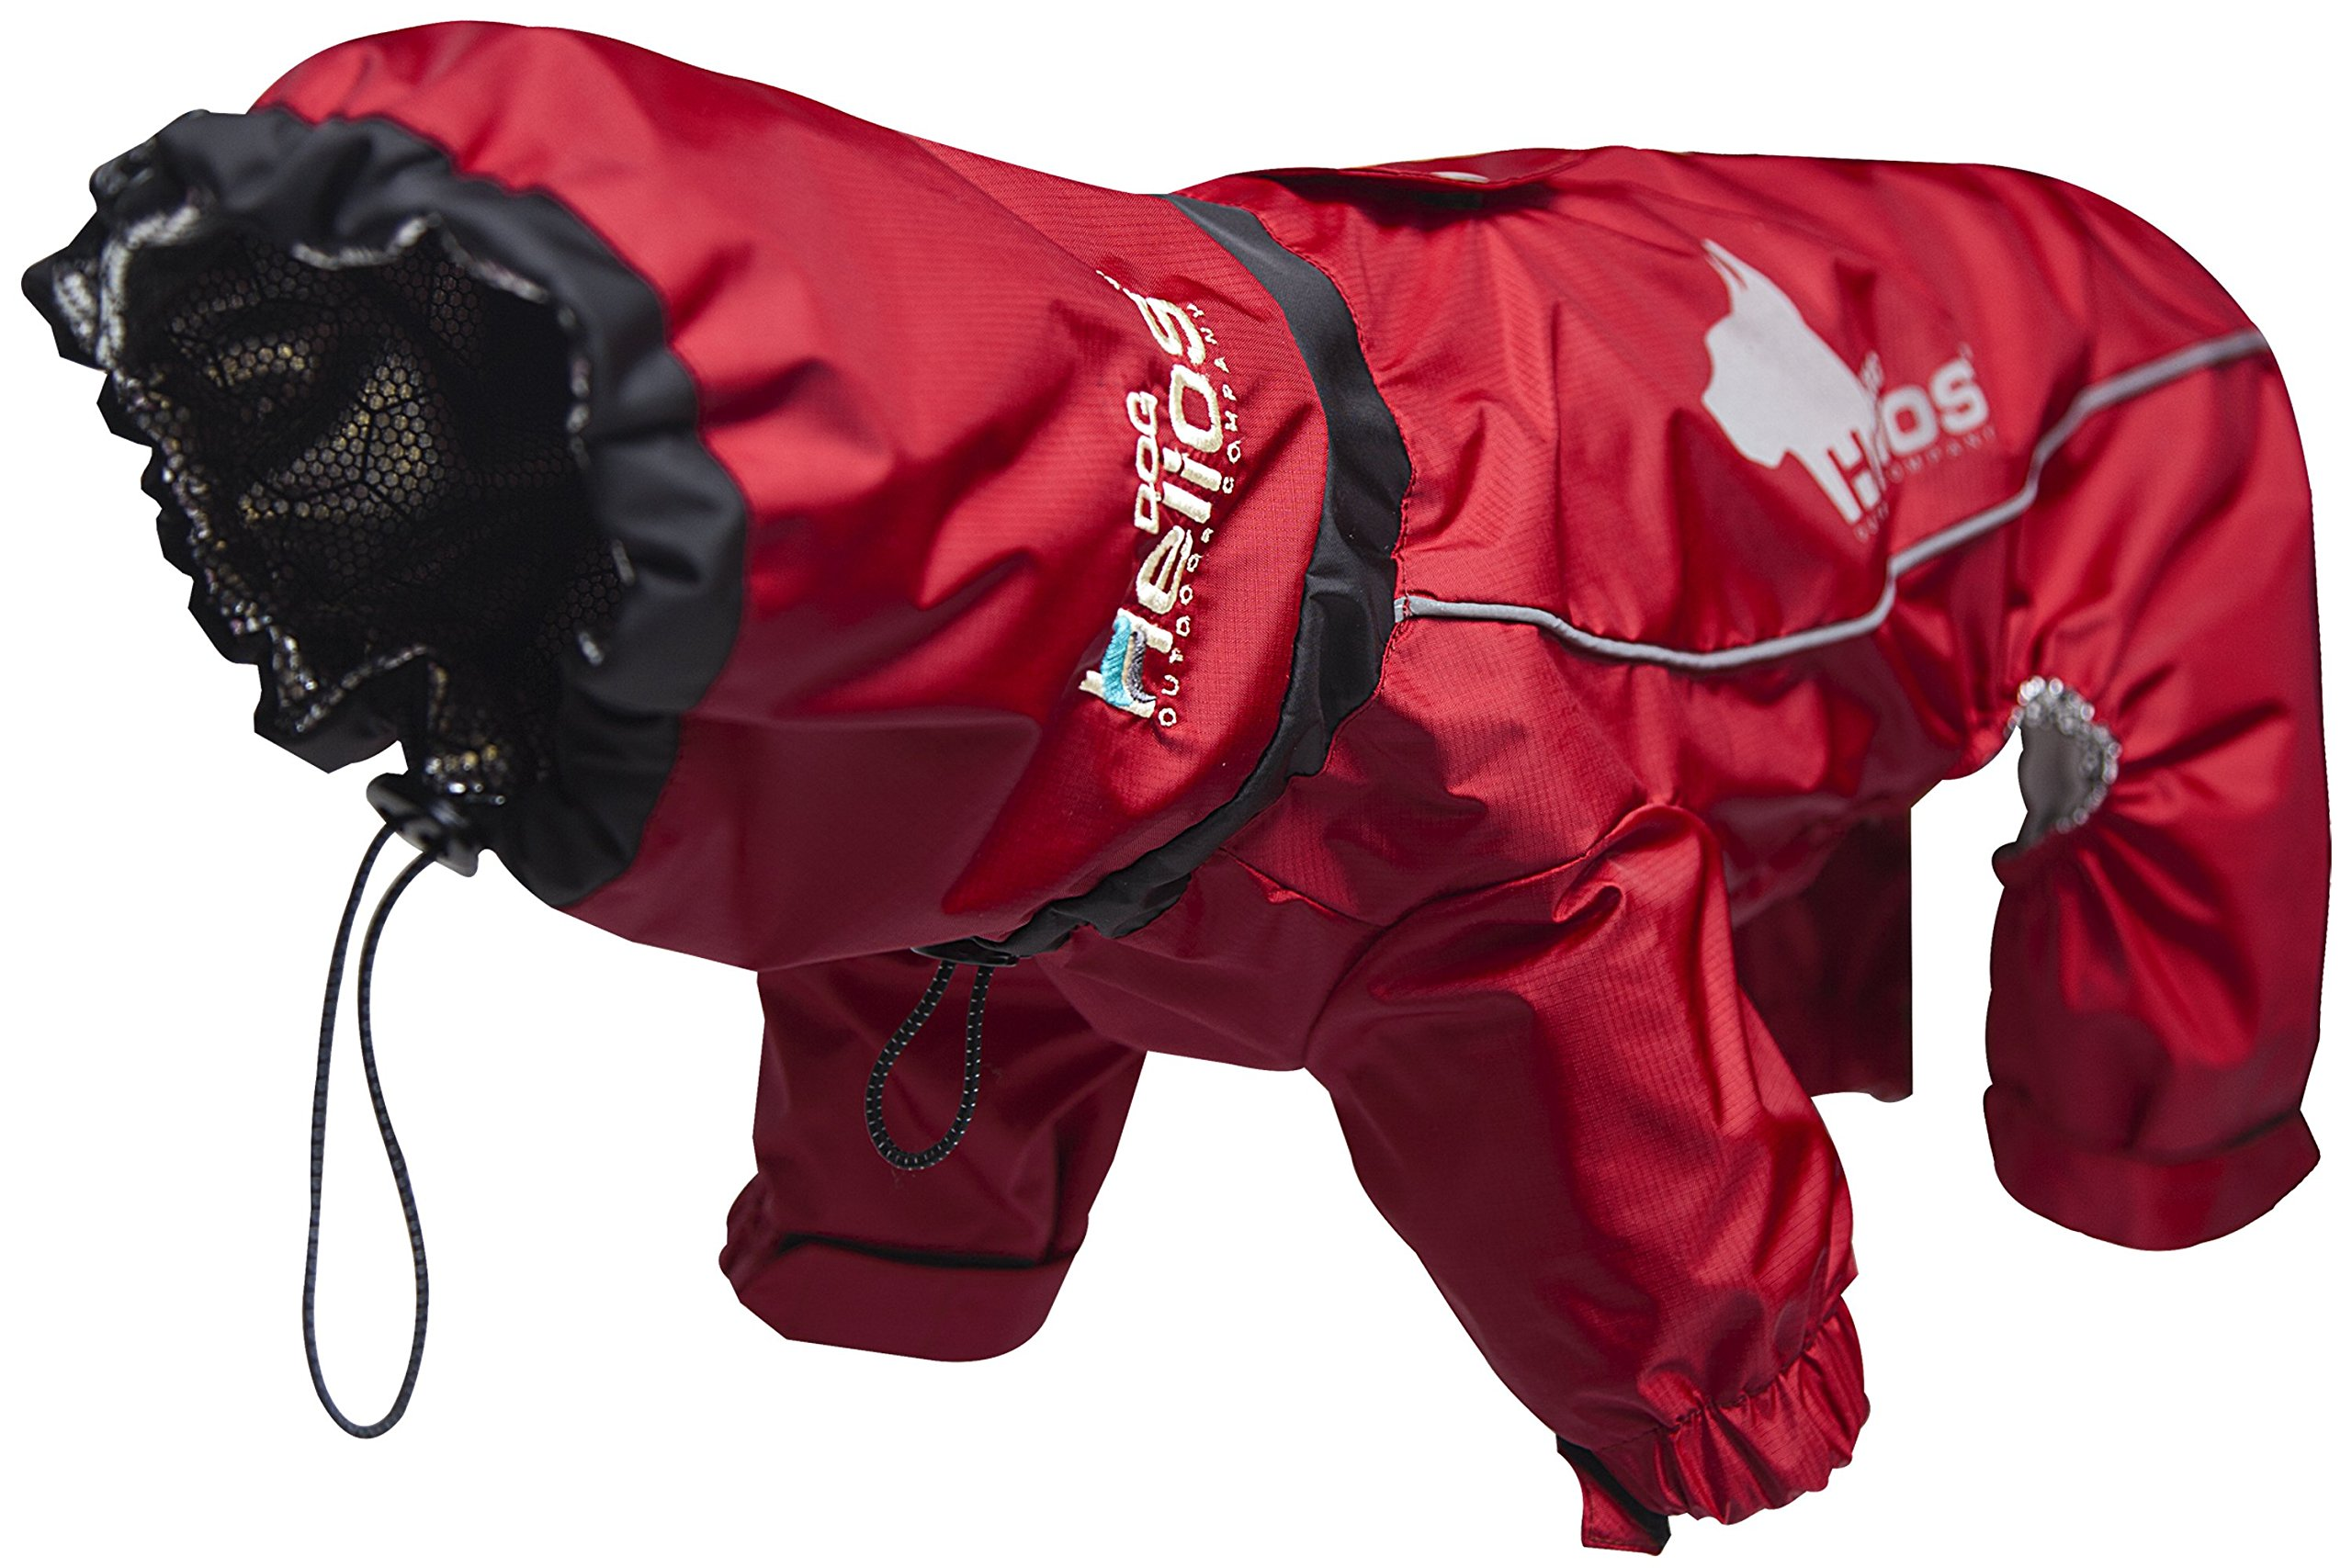 DogHelios Weather-King' Windproof Waterproof and Insulated Adjustable Full Bodied Pet Dog Jacket Coat w/Heat Retention Technology, Large, Red